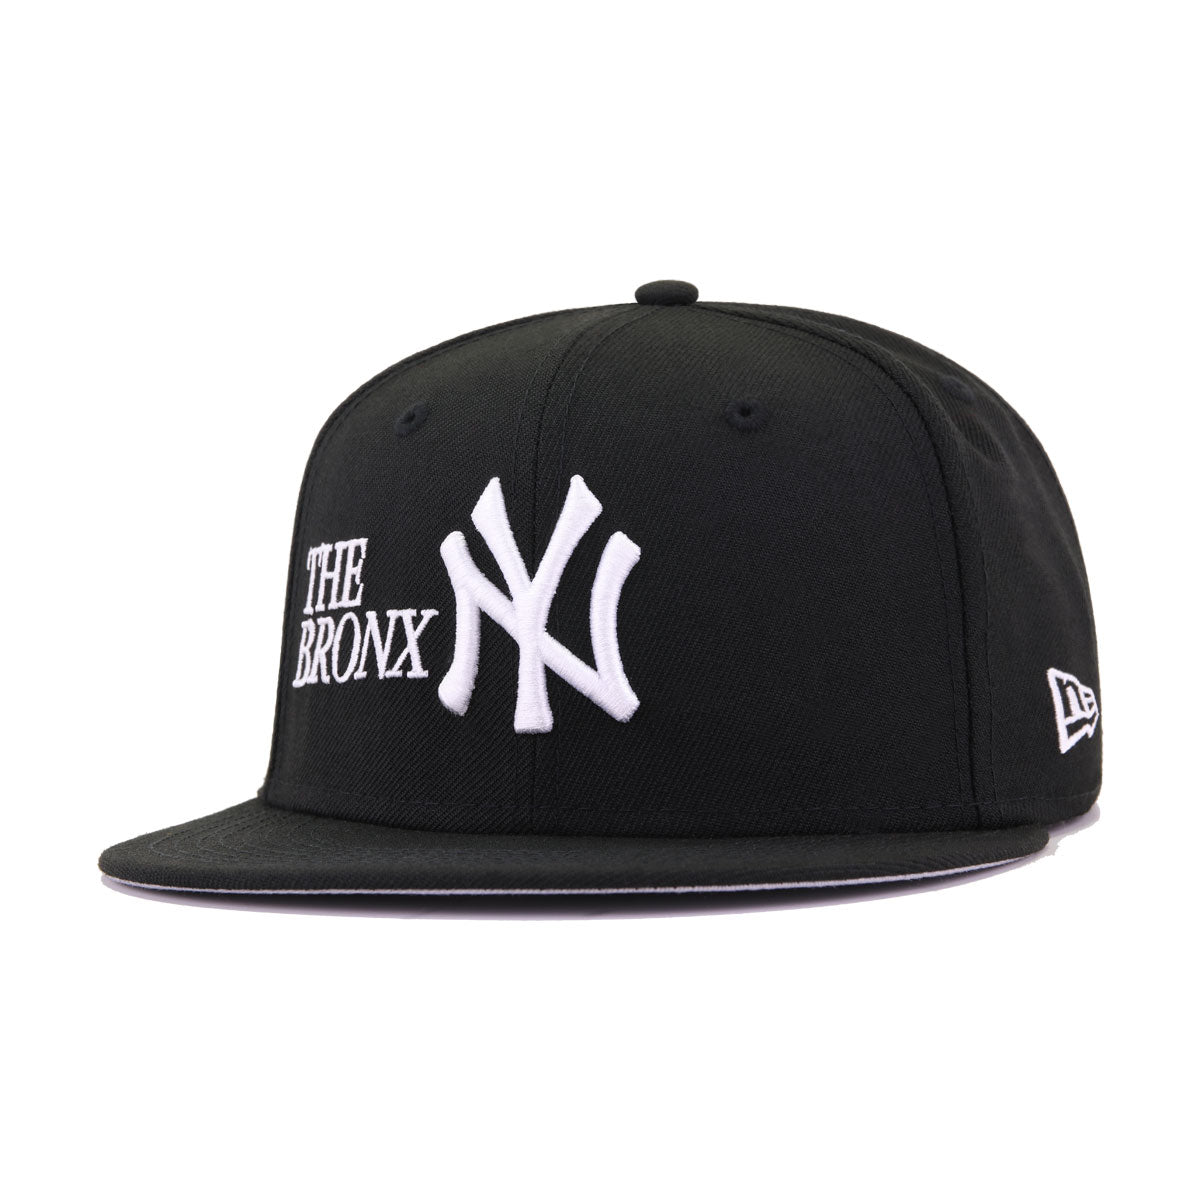 New York Yankees Black The Bronx New Era 9Fifty Snapback